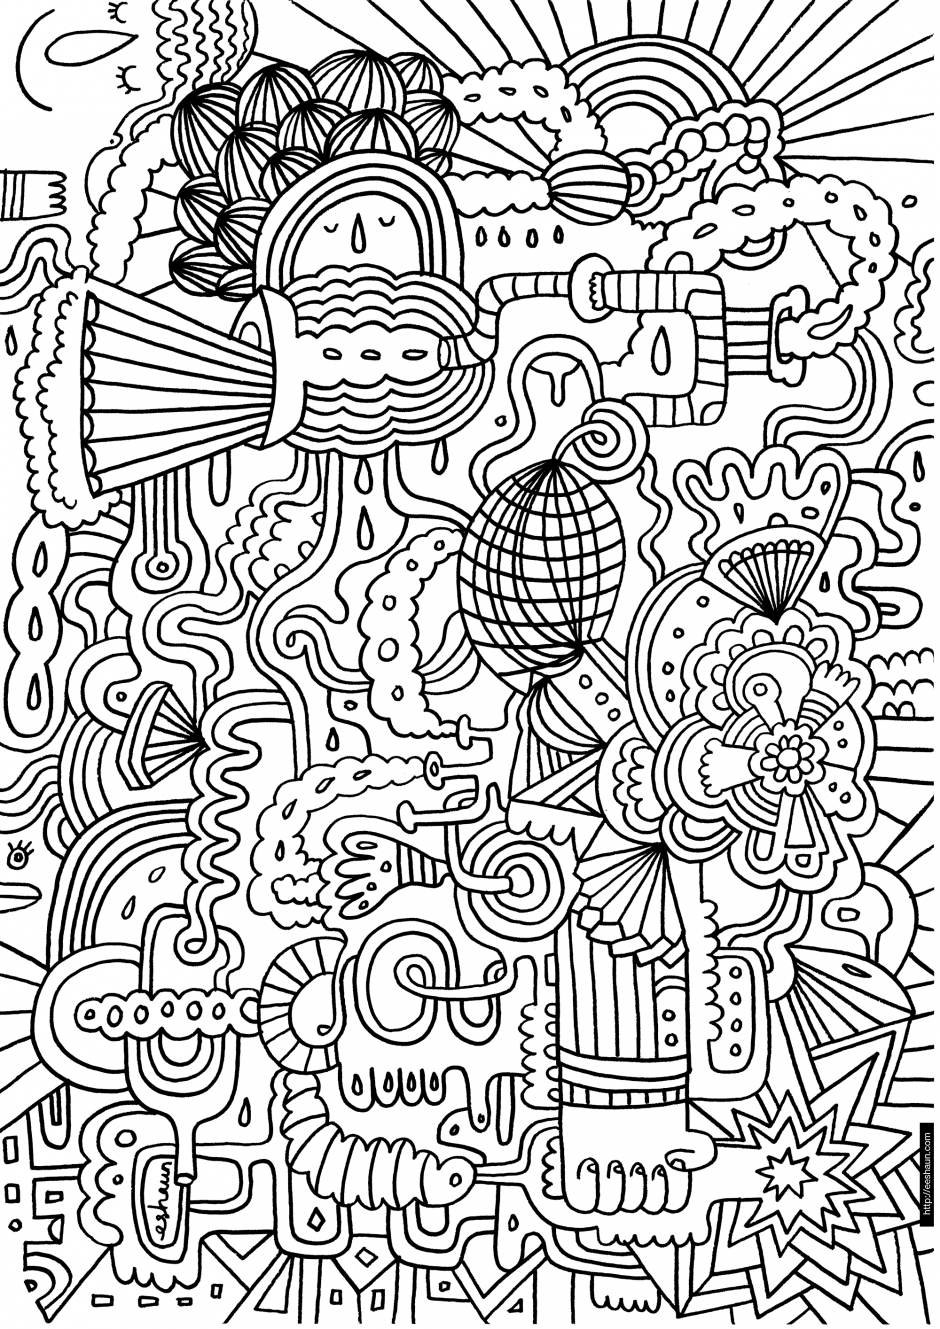 printable difficult coloring pages adult flower difficult coloring pages printable difficult printable pages coloring